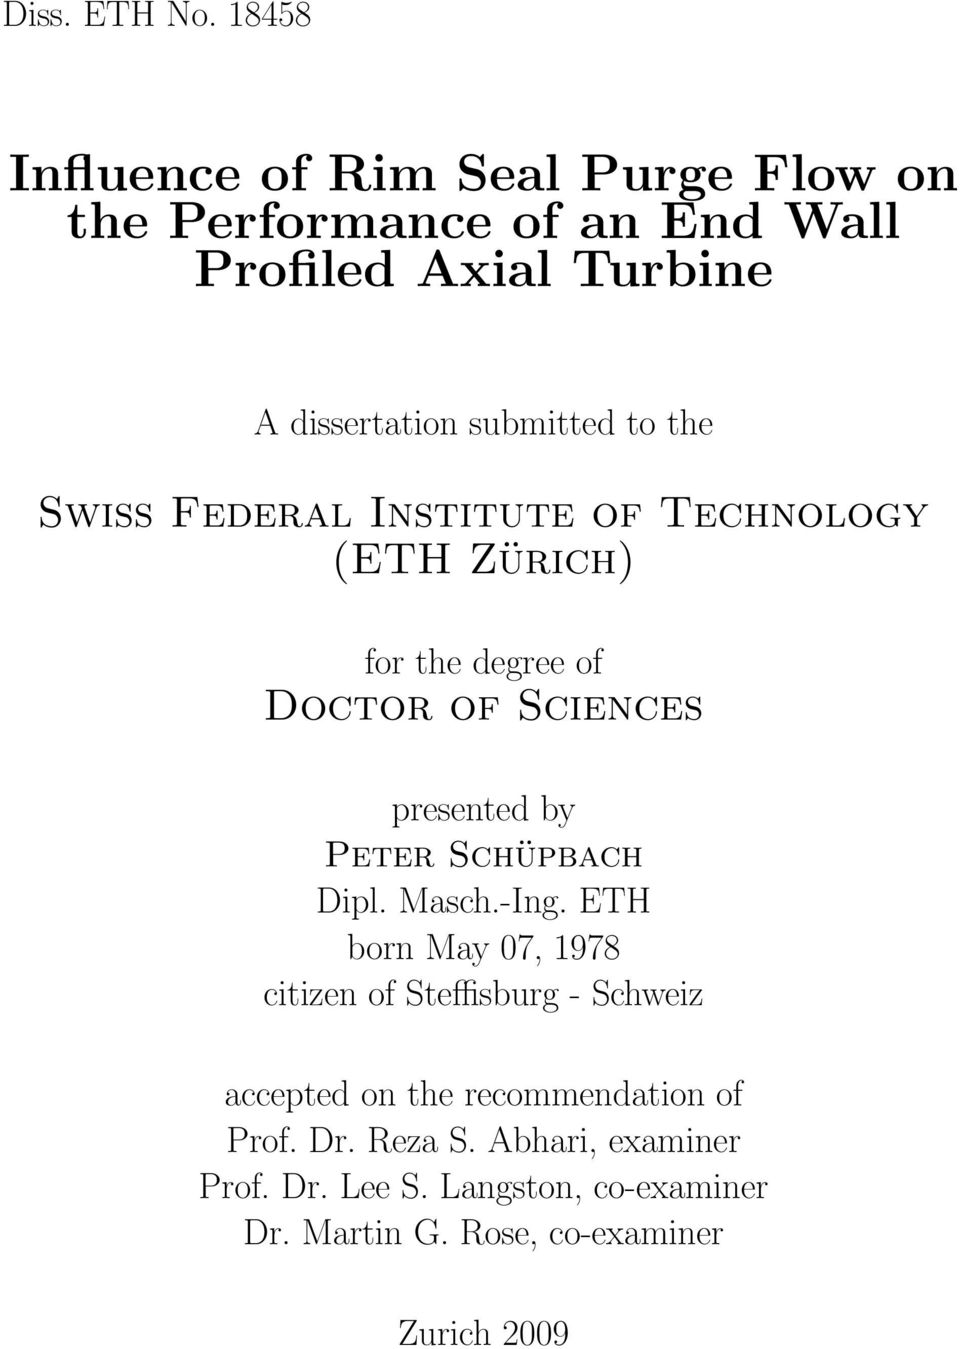 to the Swiss Federal Institute of Technology (ETH Zürich) for the degree of Doctor of Sciences presented by Peter